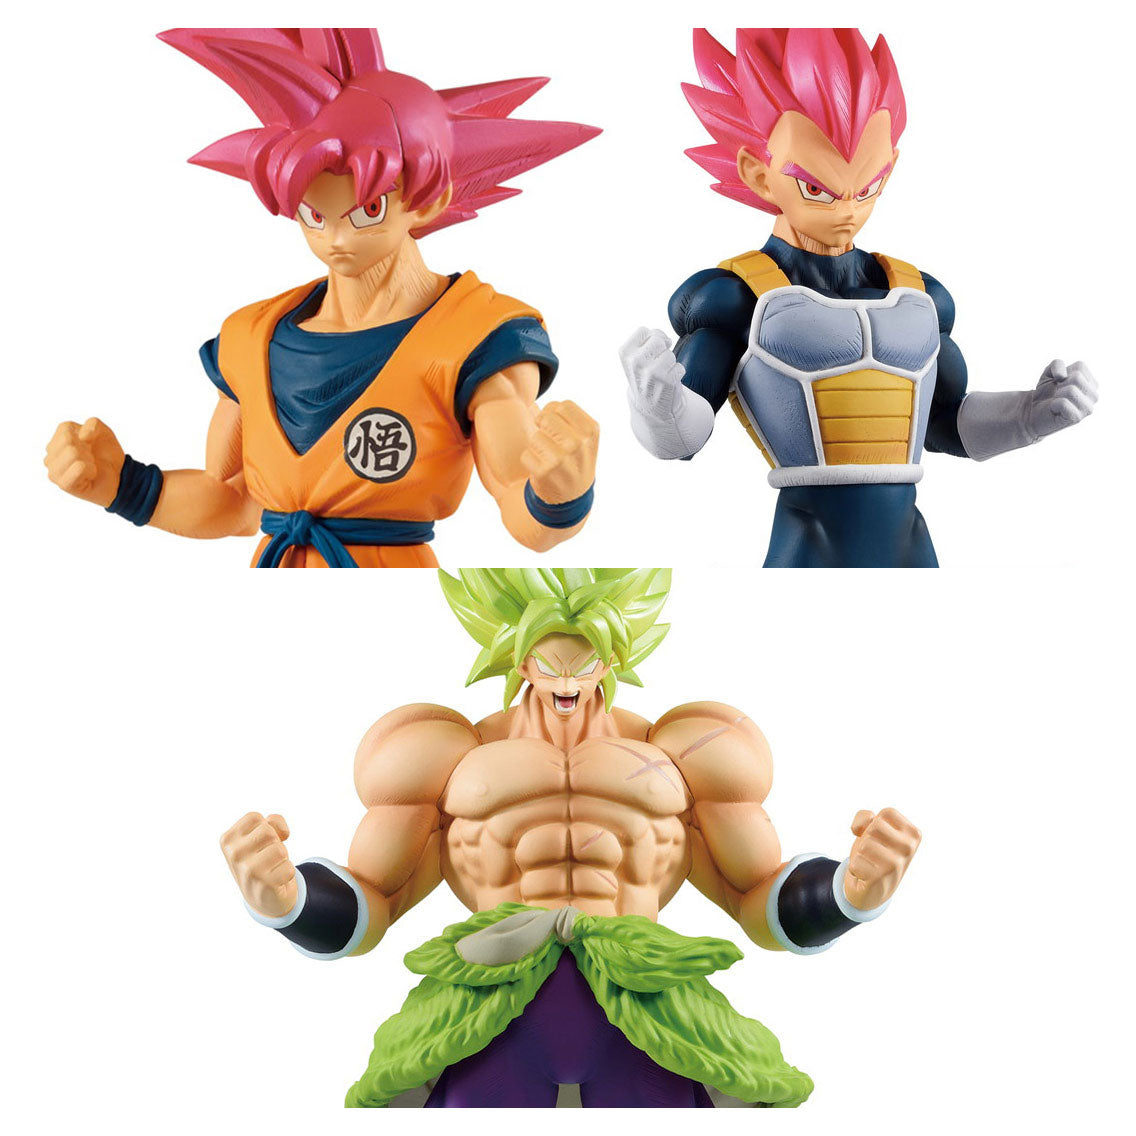 Dragon Ball Broly Full Movie: Banpresto Dragon Ball Super The Movie Chokoku Buyuden Goku